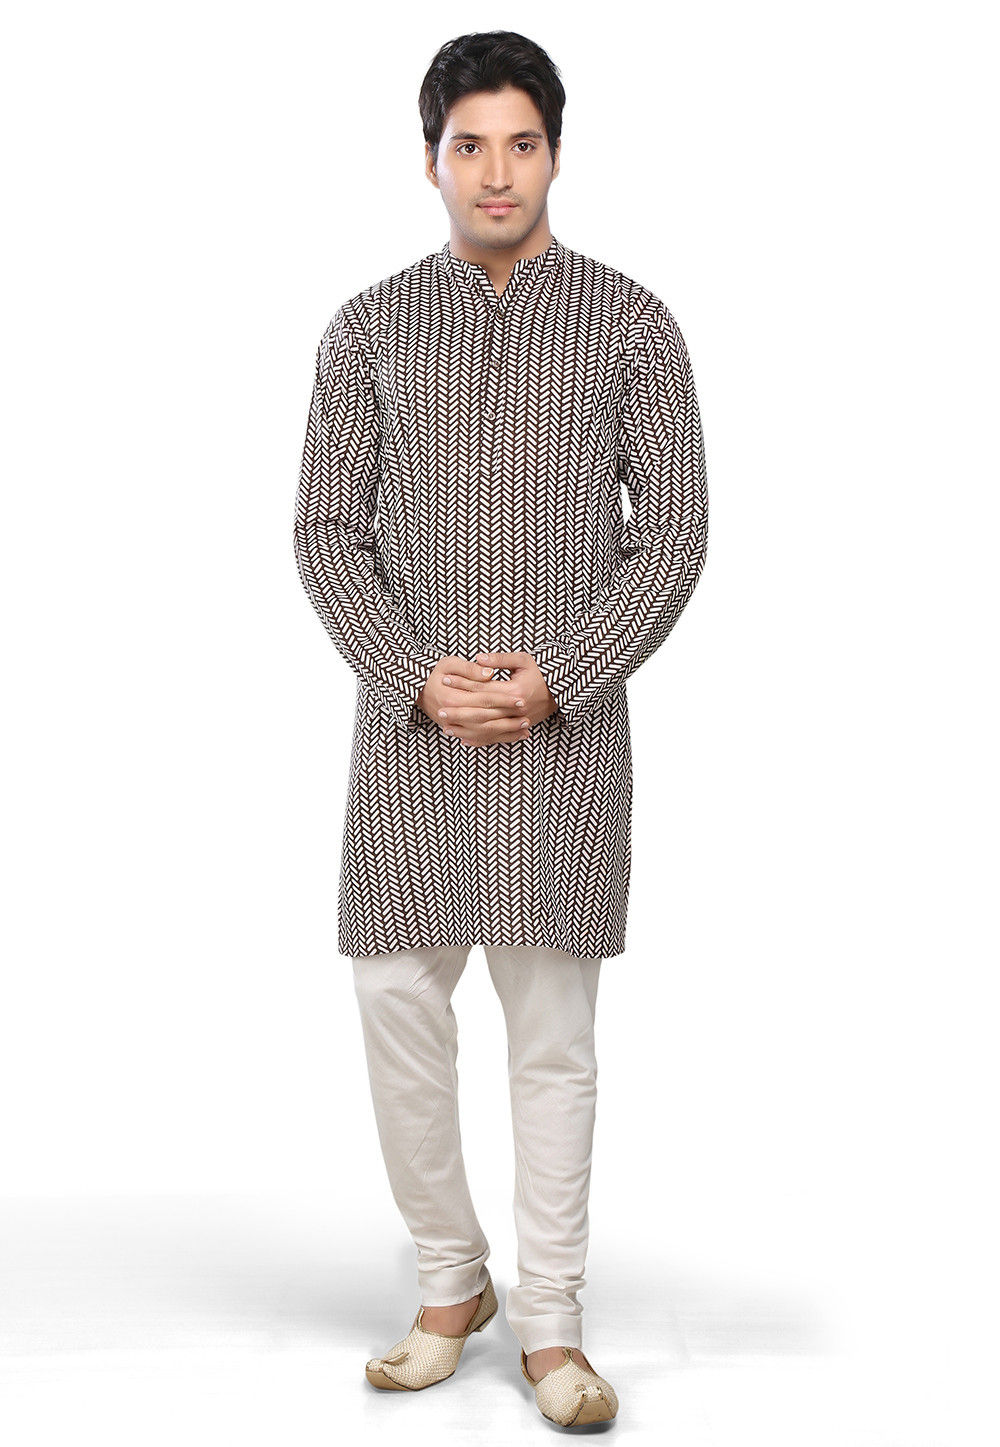 Printed Cotton Kurta Churidar in Black and White